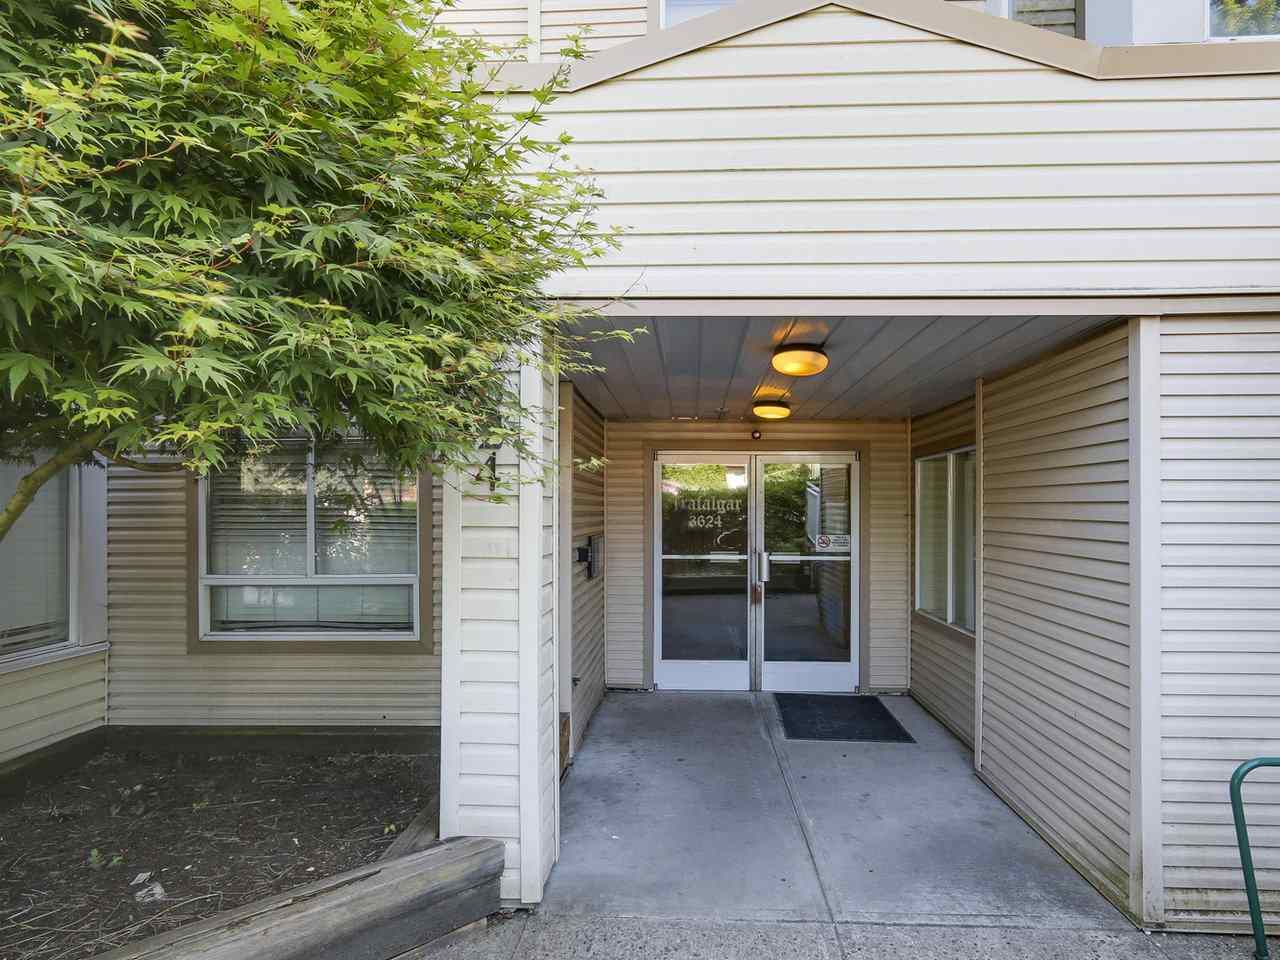 "Photo 2: 102 3624 FRASER Street in Vancouver: Fraser VE Condo for sale in ""THE TRAFALGAR"" (Vancouver East)  : MLS® # R2173895"